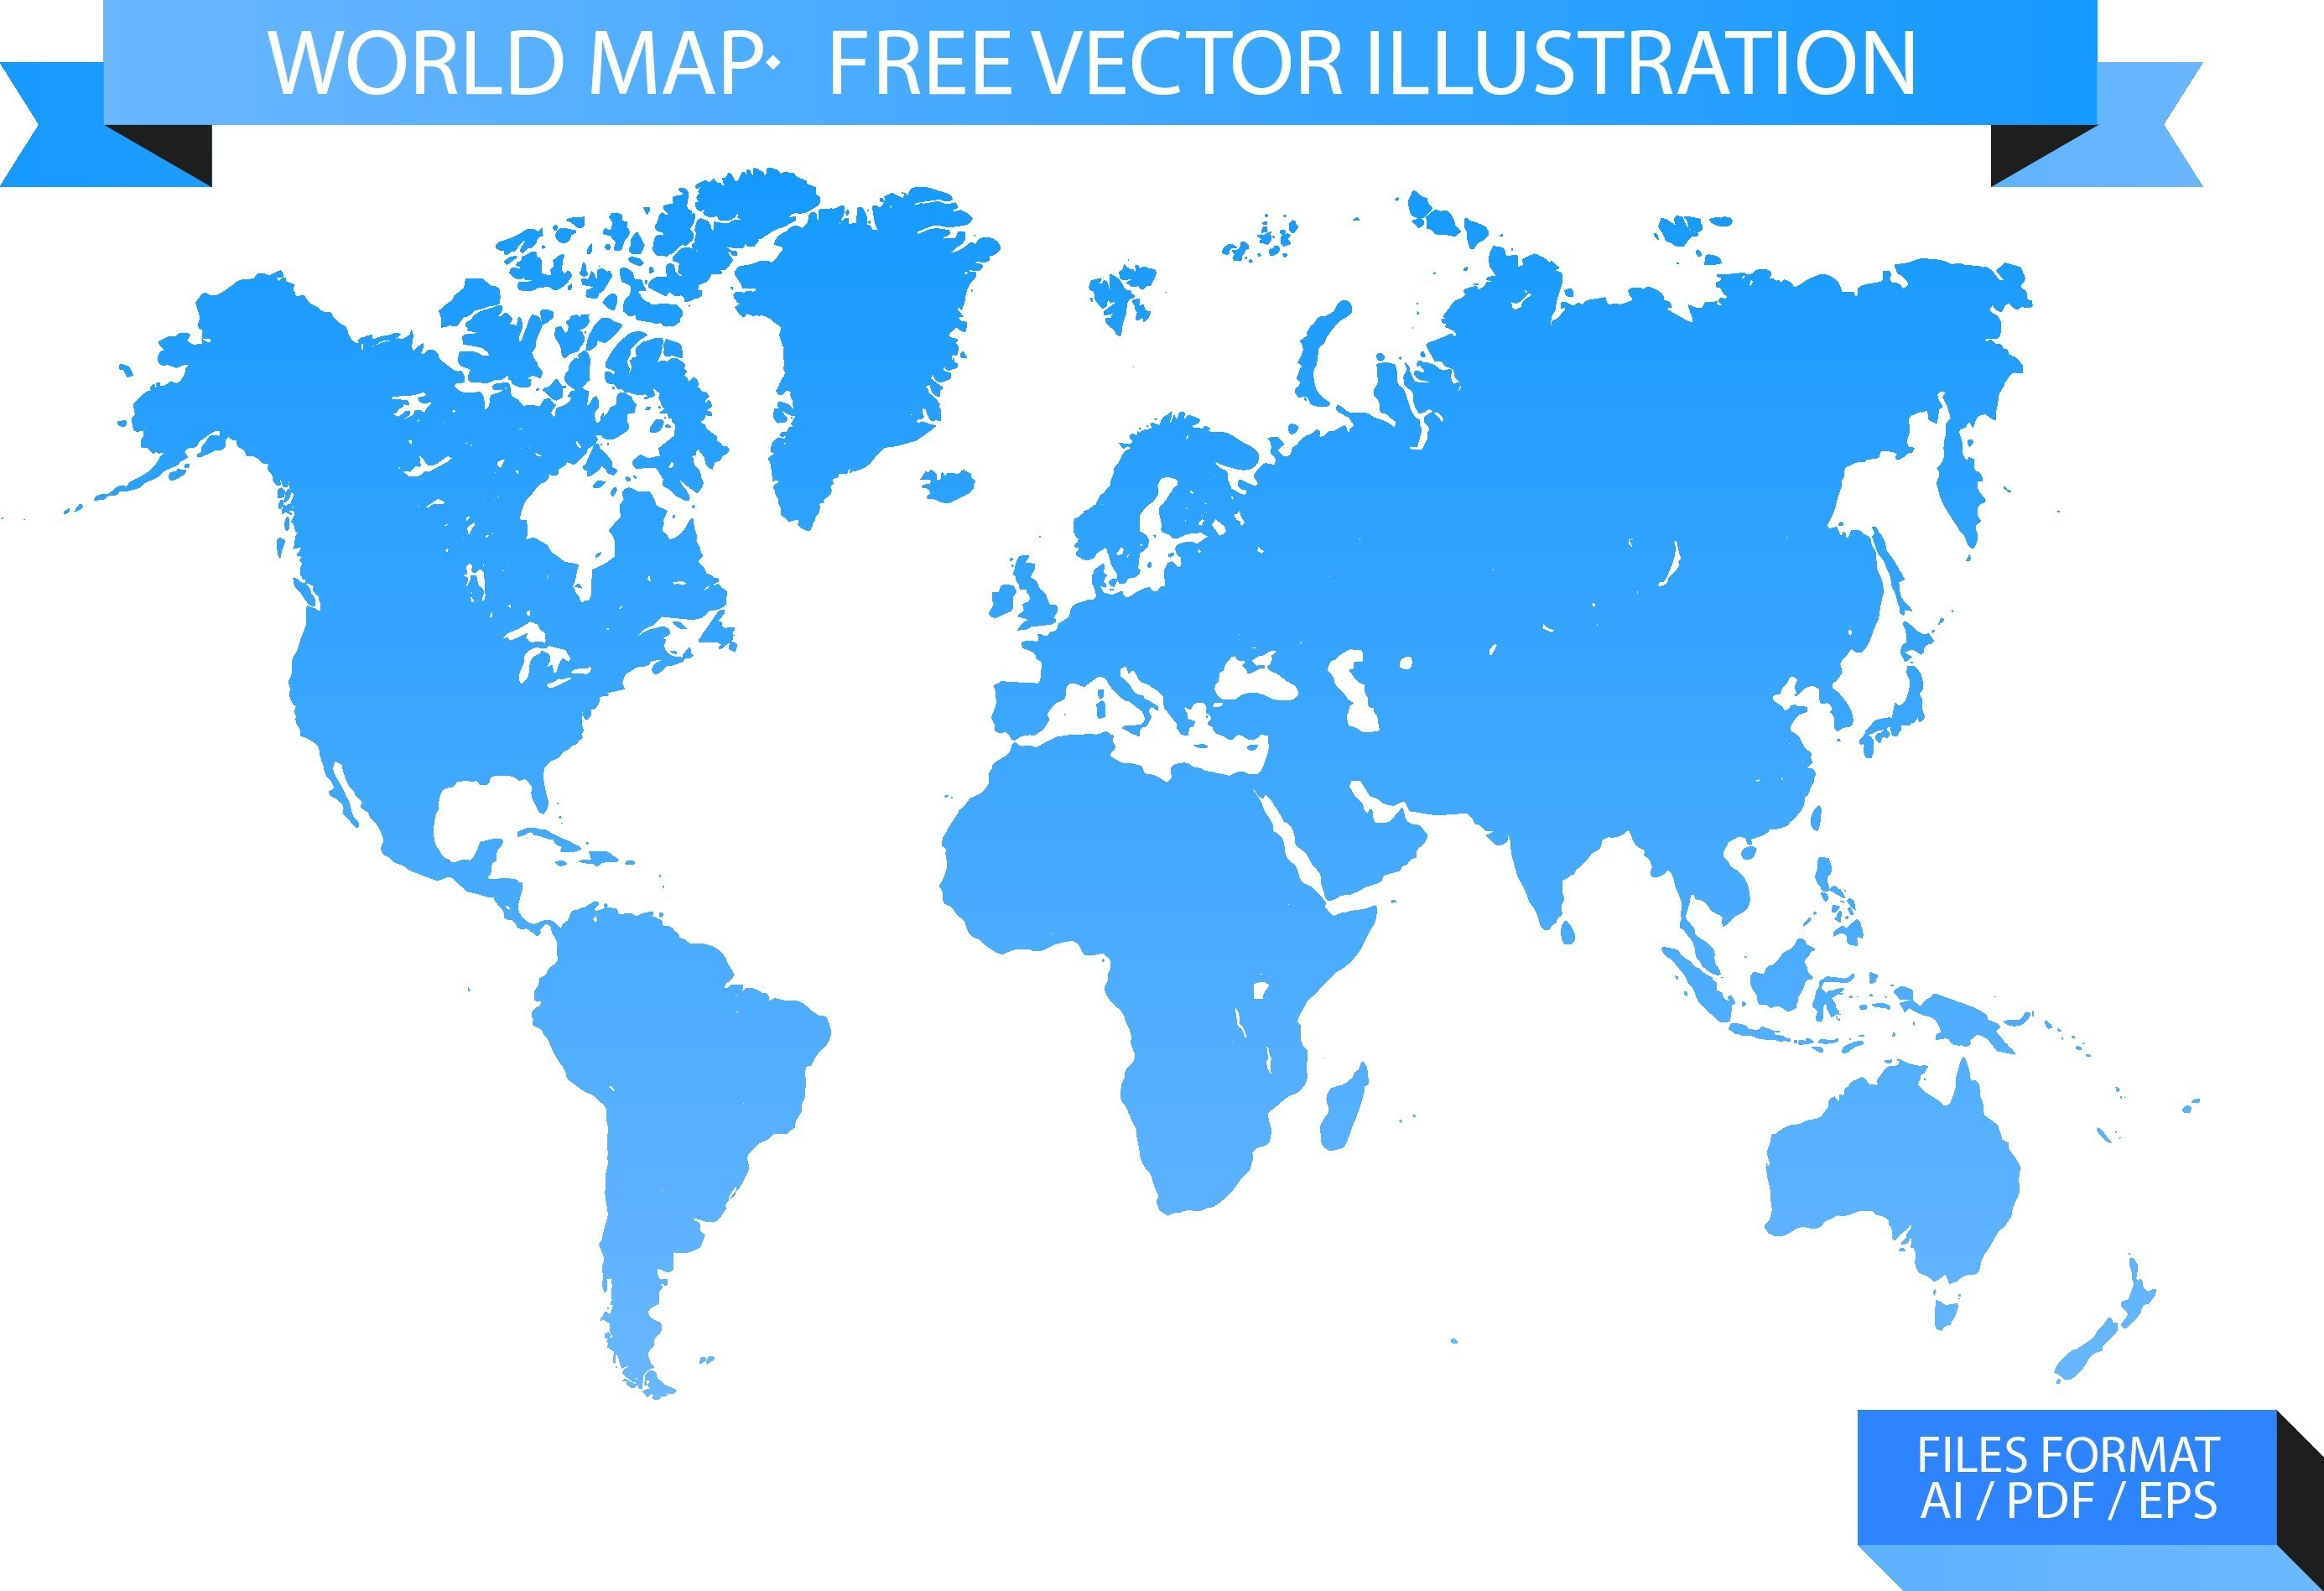 2771x1897 Examples Of Executive Resumes. World Map Vector For Free Fresh